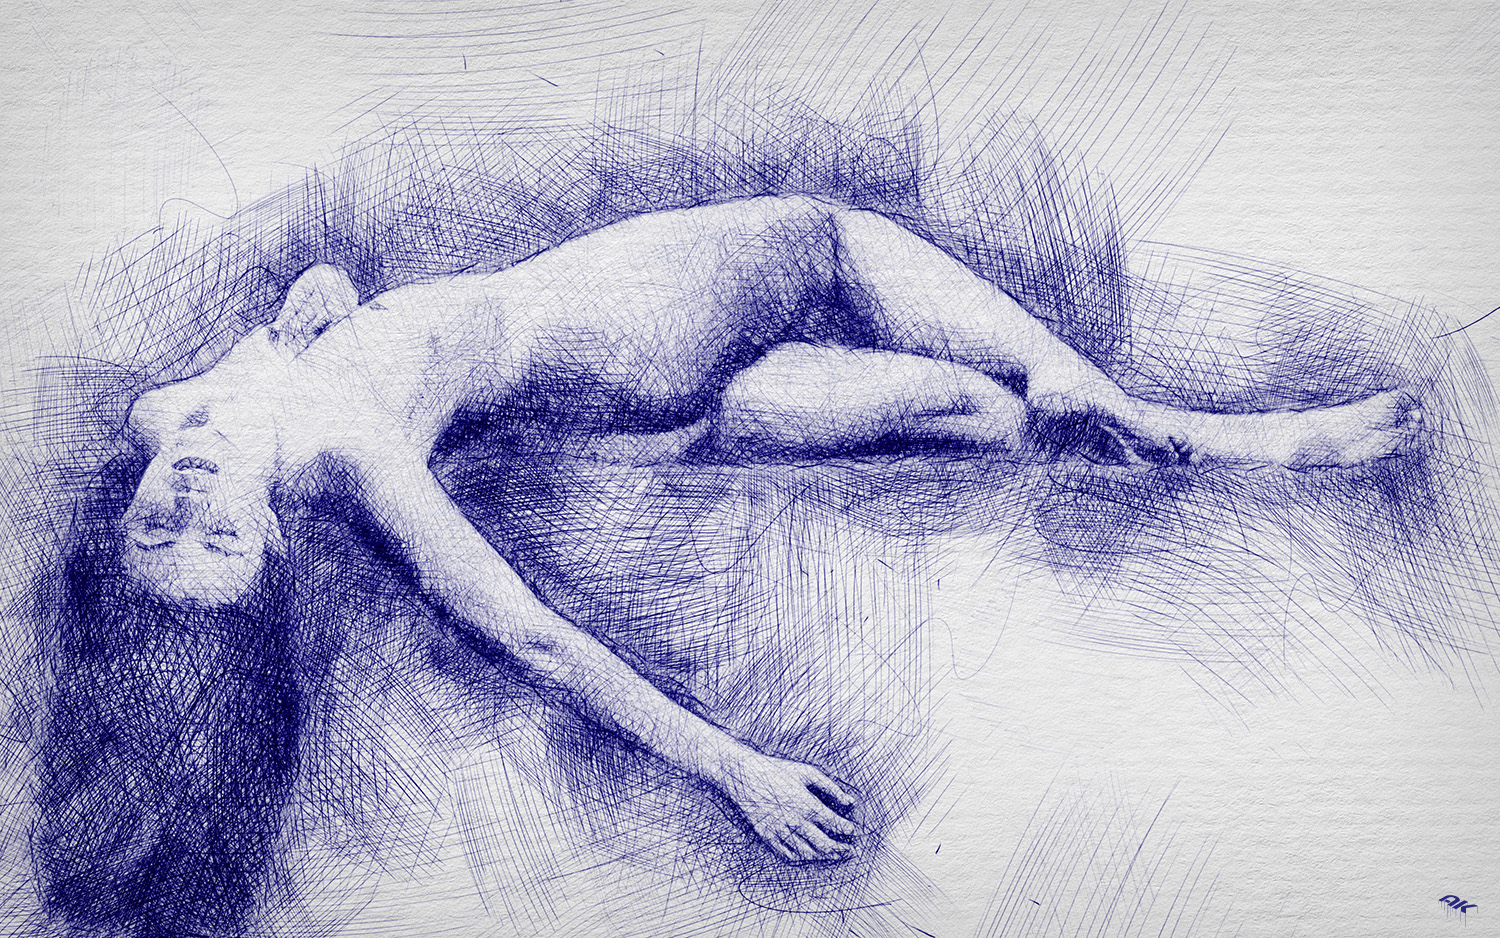 life-drawing-series-5-image-1-copyright-andrew-knutt